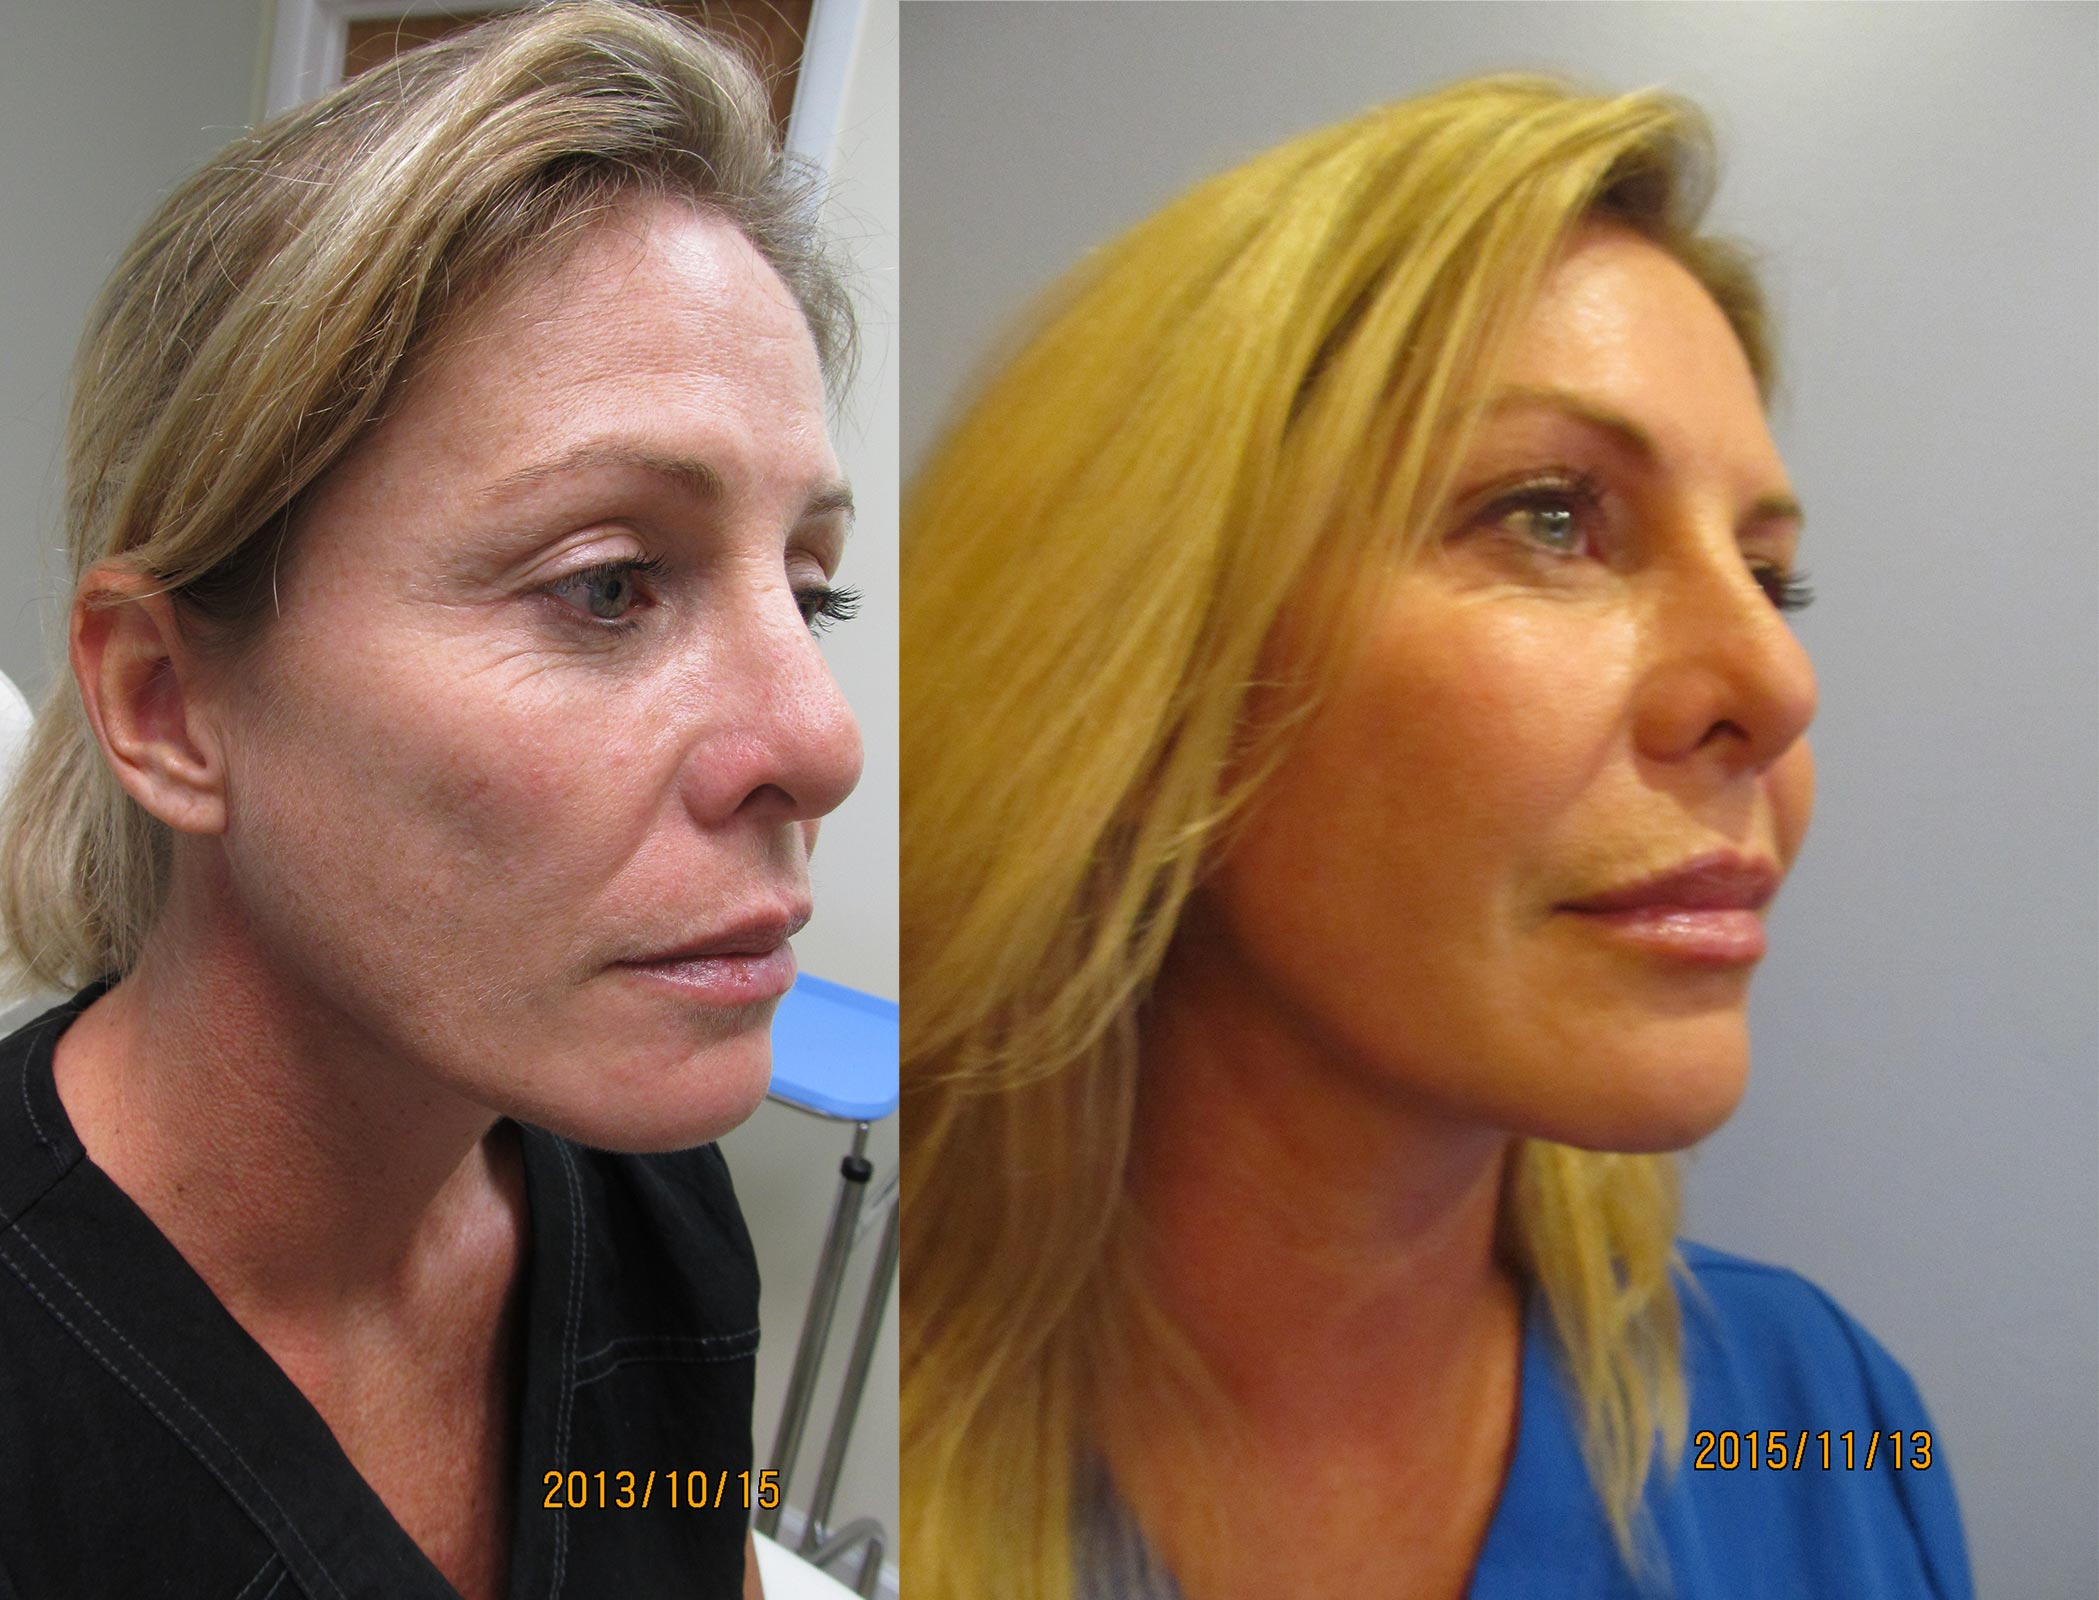 Fat Transfer to Face Before and After Photo 1